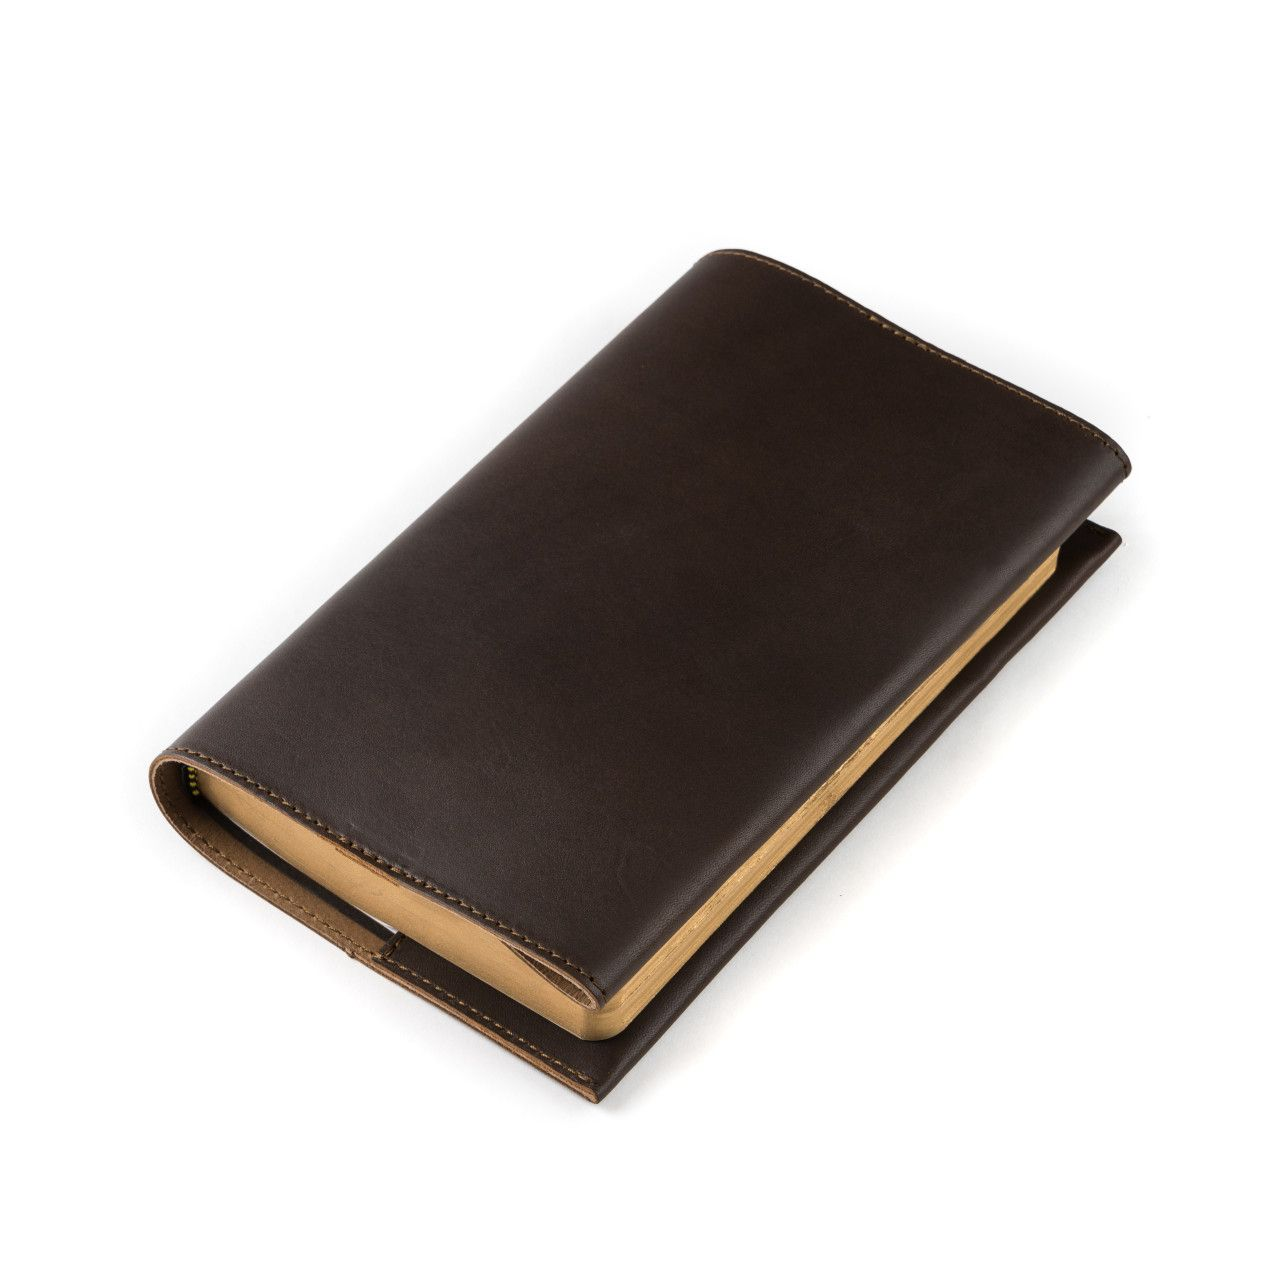 leather book cover small in dark coffee brown leather